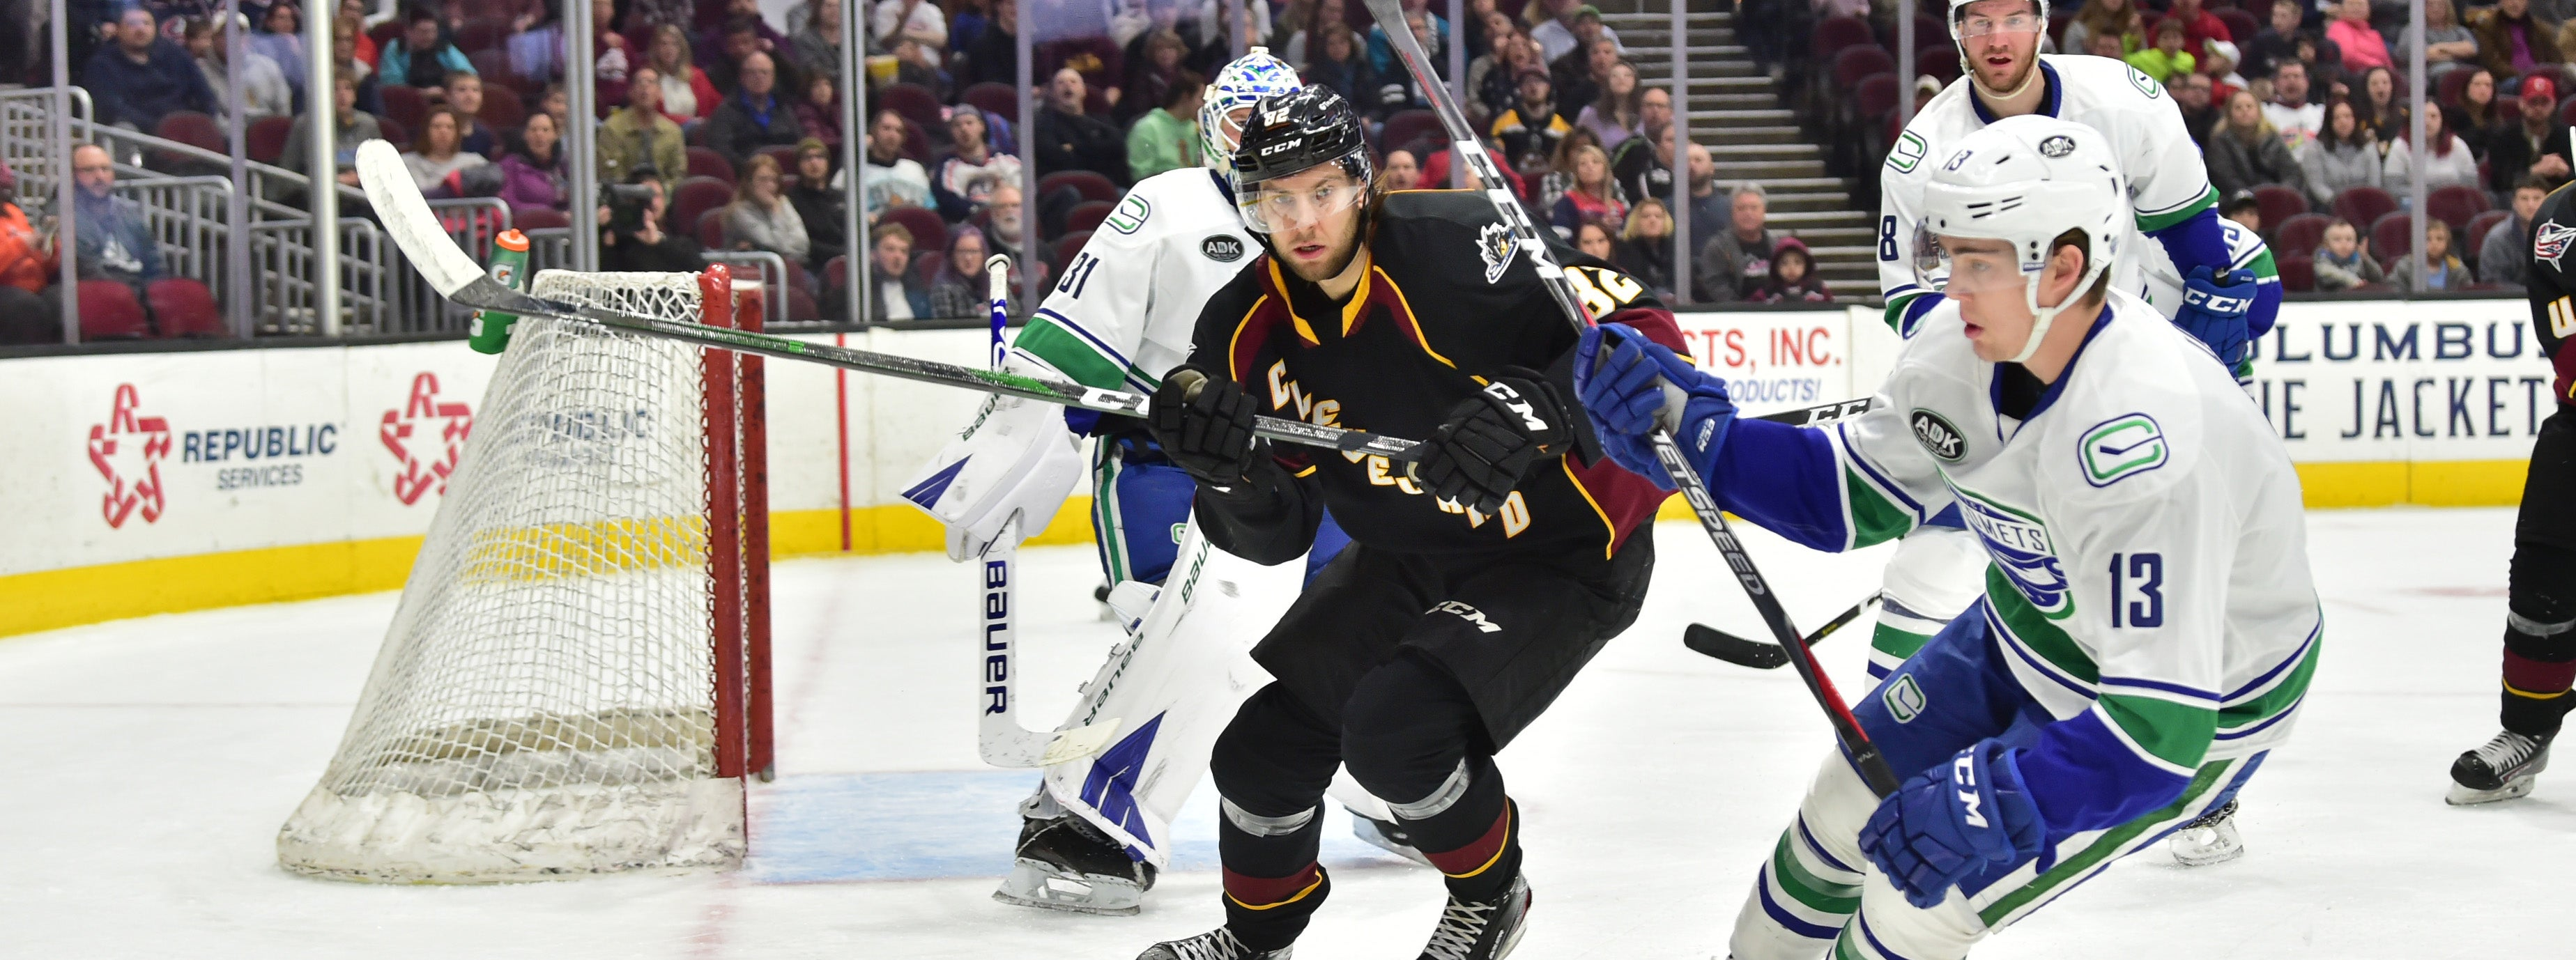 COMETS FALL VICTIM TO MONSTERS' SPECIAL TEAMS